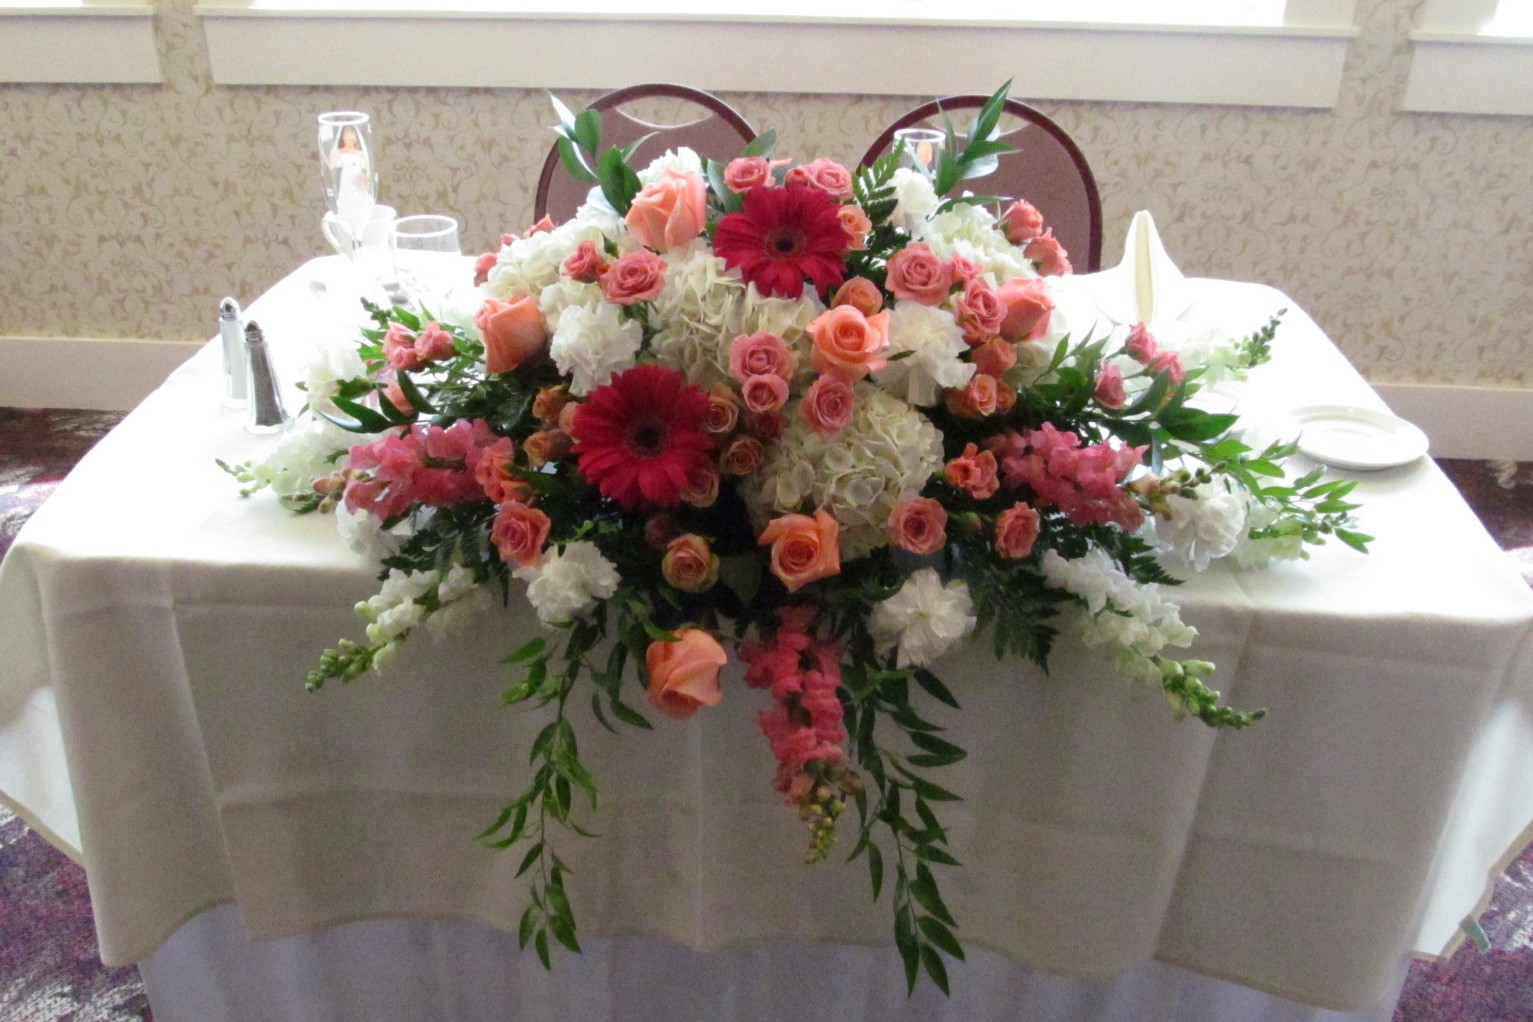 sweetheart table flowers buffalo wedding event flowers by lipinoga florist. Black Bedroom Furniture Sets. Home Design Ideas